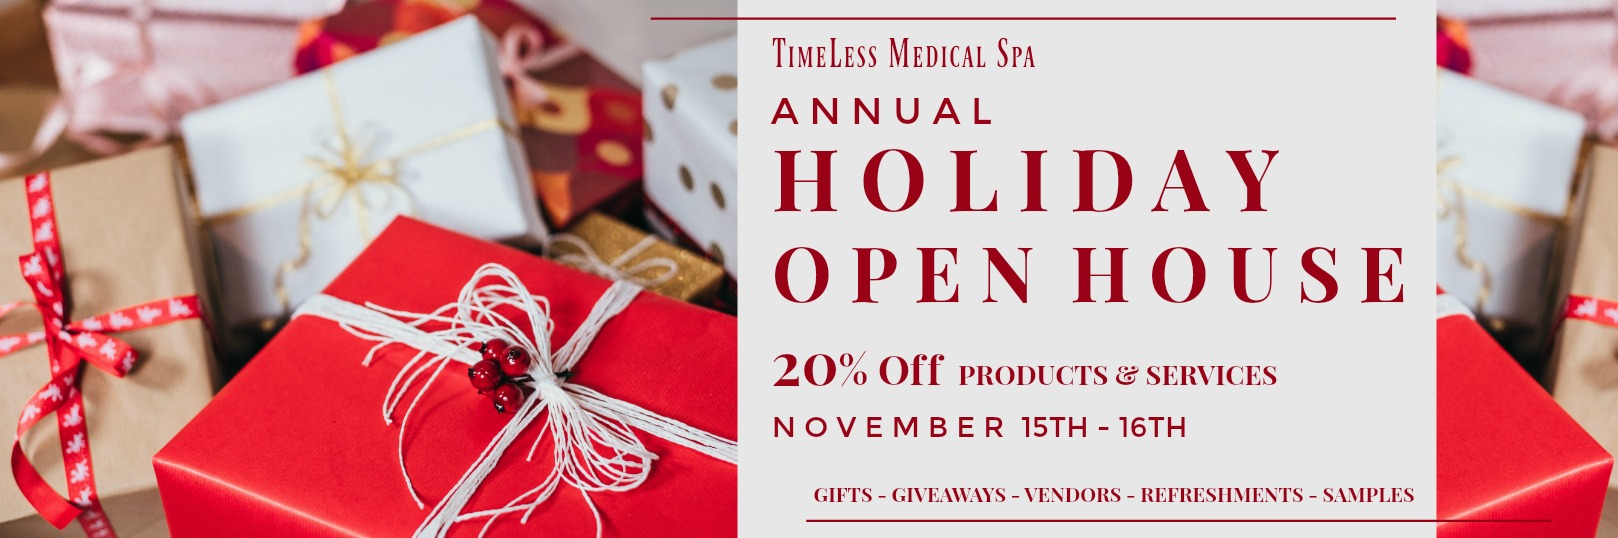 TimeLess Medical Spa Annual Holiday Open House